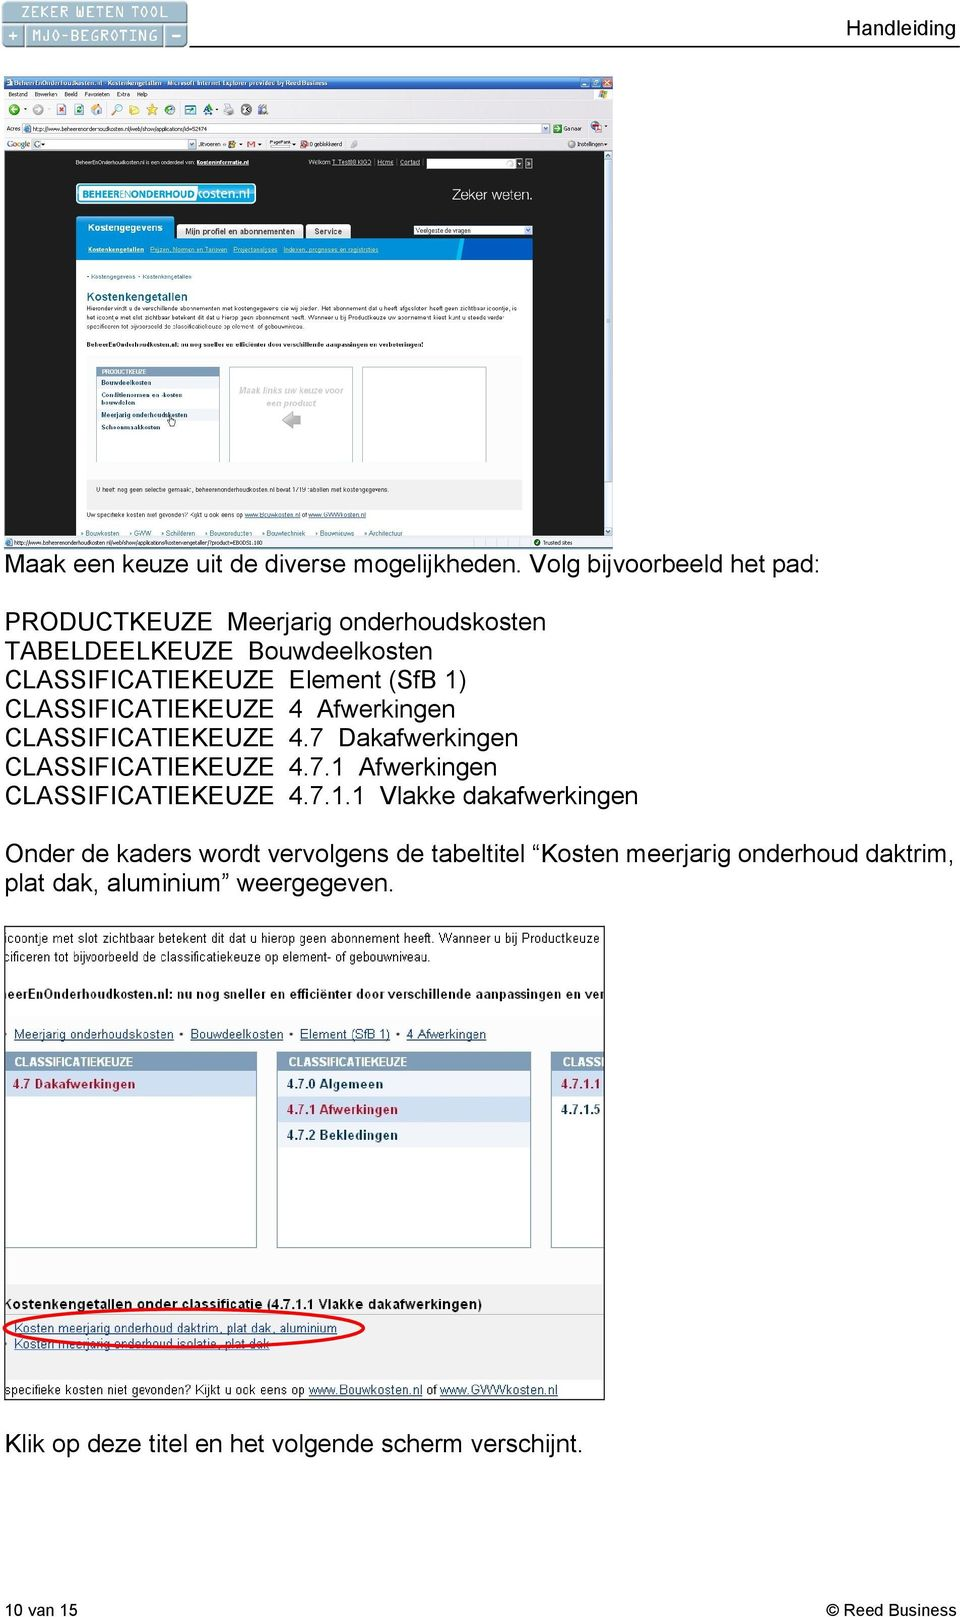 CLASSIFICATIEKEUZE 4 Afwerkingen CLASSIFICATIEKEUZE 4.7 Dakafwerkingen CLASSIFICATIEKEUZE 4.7.1